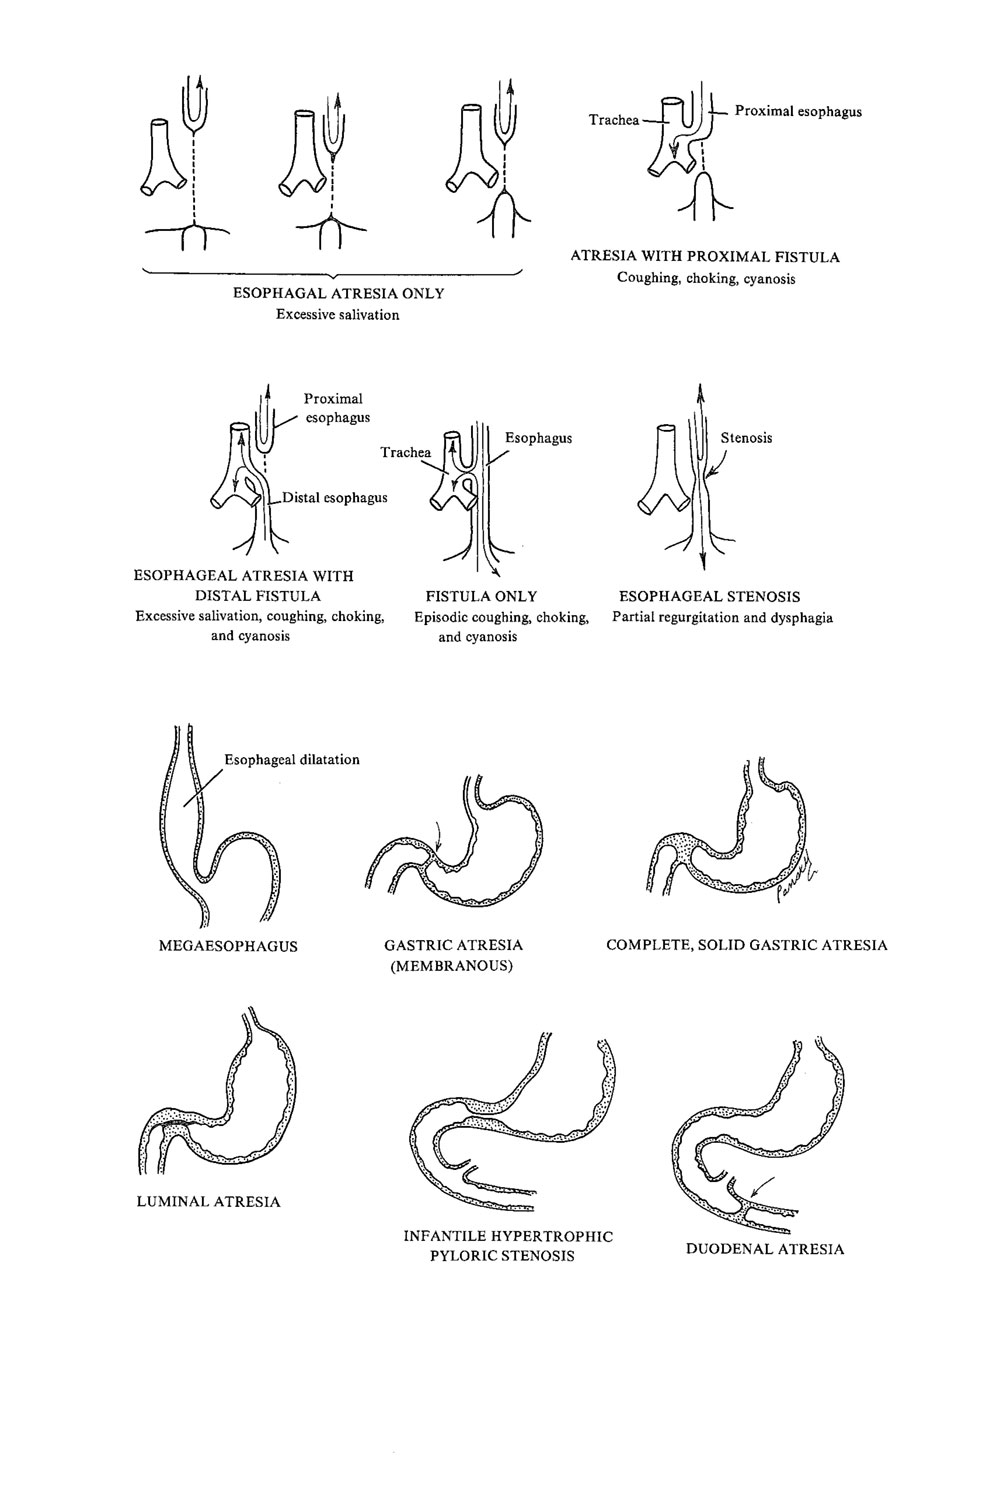 congenital malformations  of the digestive system:  foregut malformations: image #1